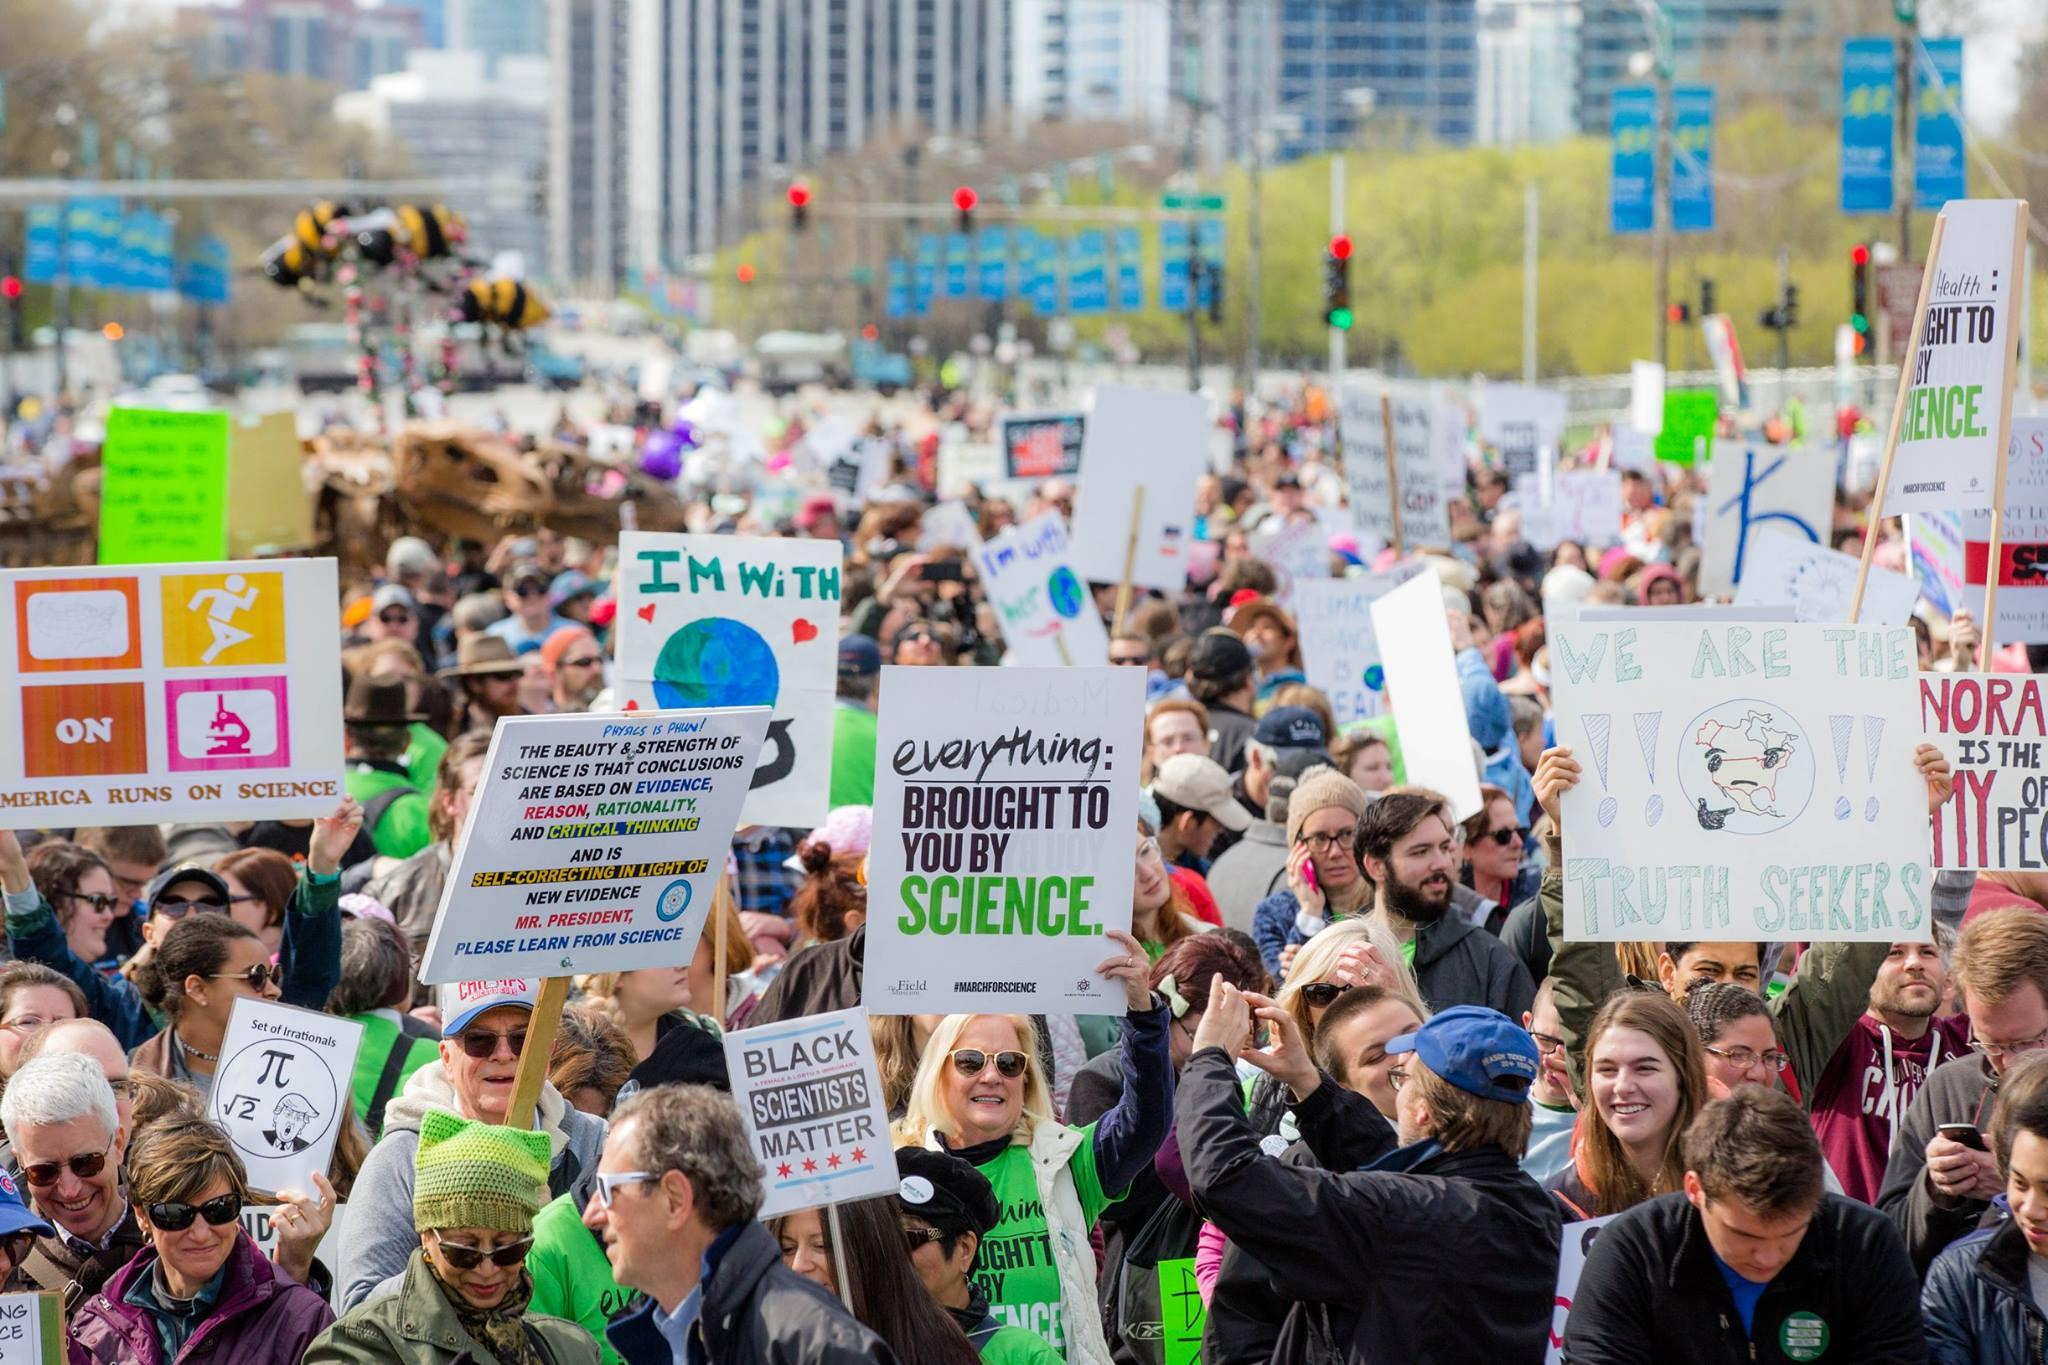 Chicago's March for Science drew an estimated 60,000 participants in 2017. This year's event will include a science fair and rally. (Zachary James Johnston / United Sciences of Chicago)